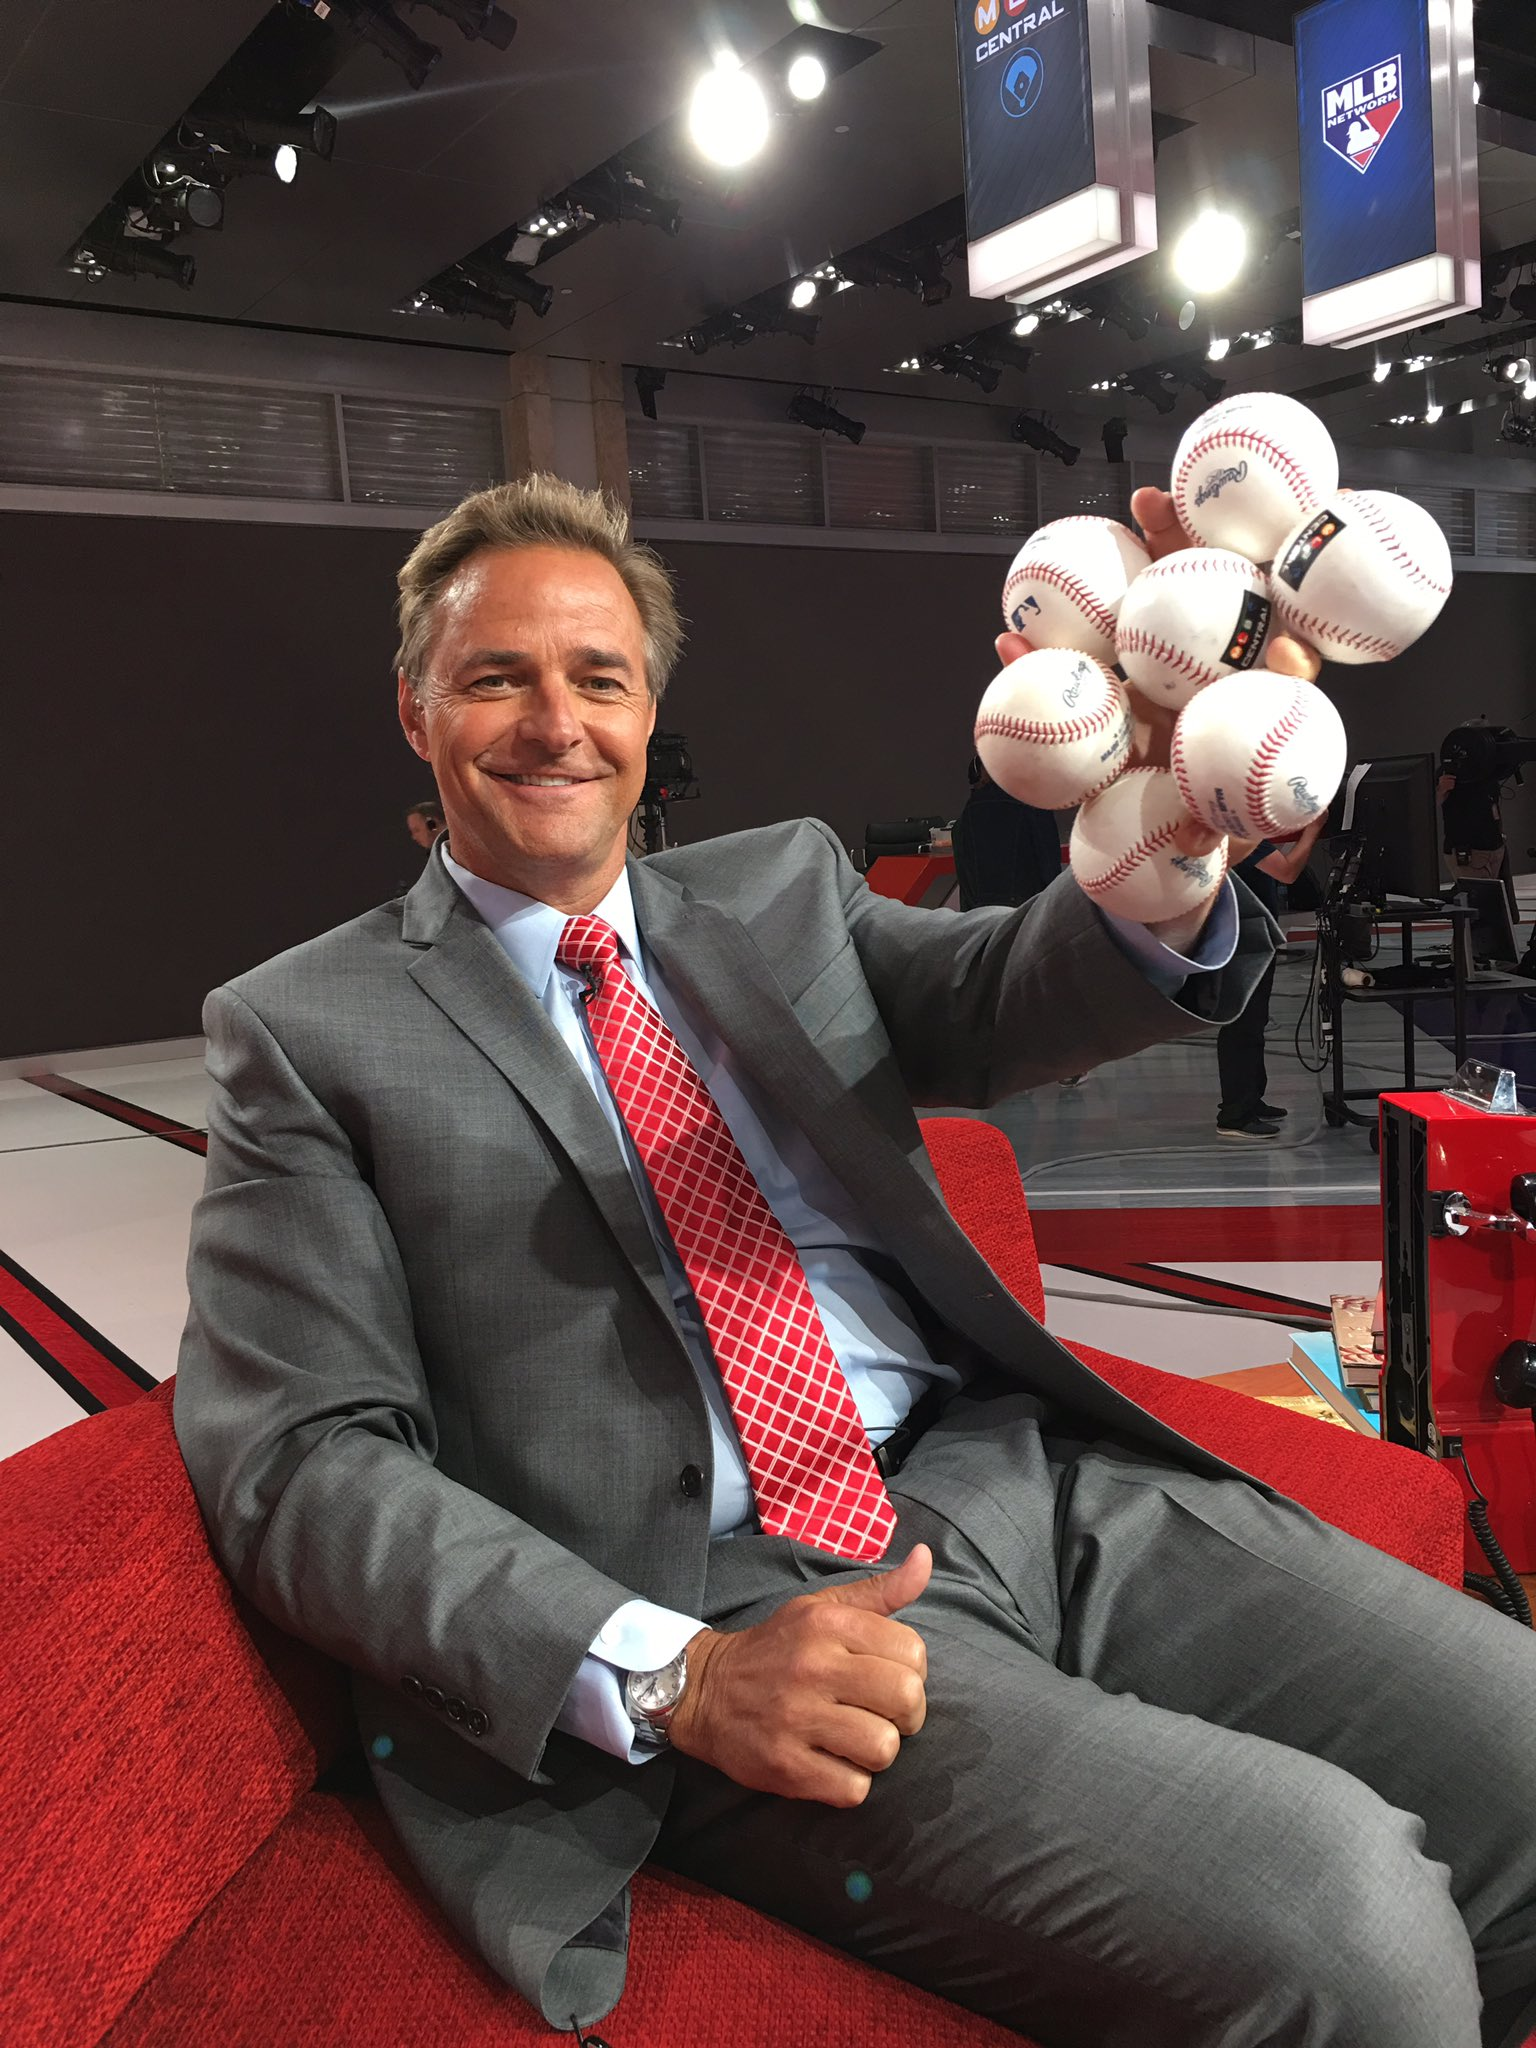 al leiter on twitter quot having fun on mlbcentral got 7